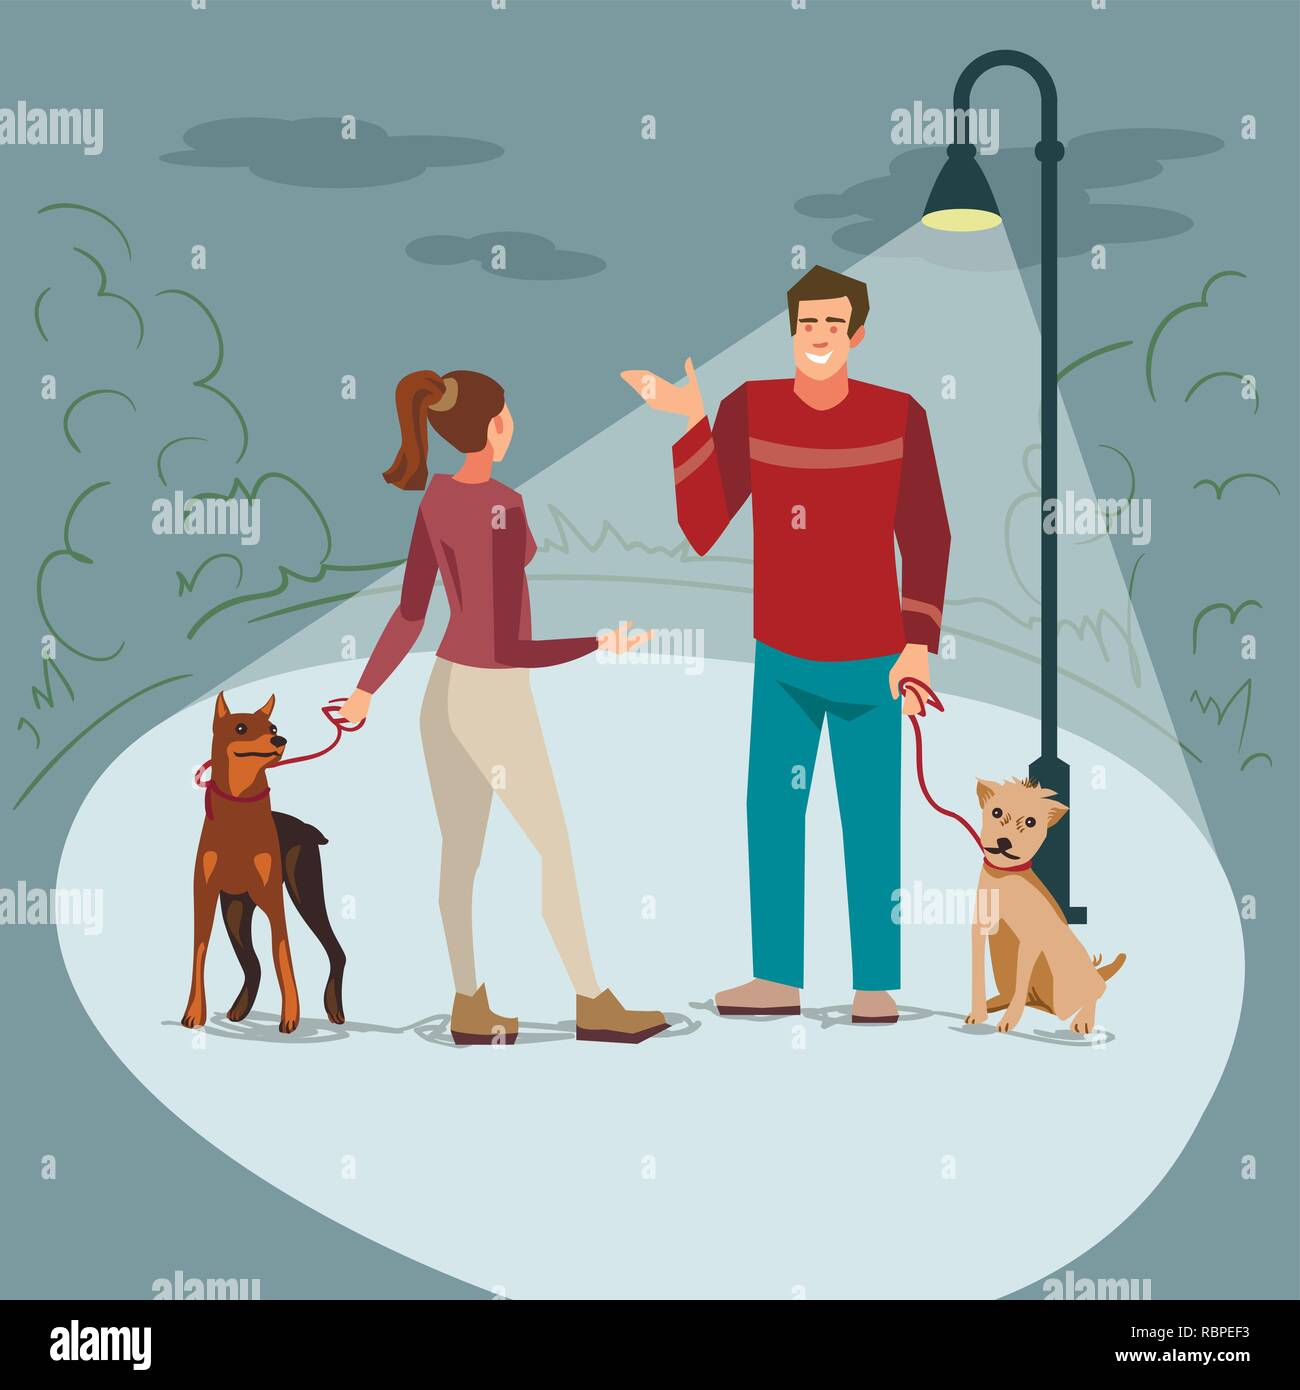 Young people (man and woman) walk in the park with their dogs in the evening when lighted lanterns. Illustration of people with pets in the street - Stock Vector